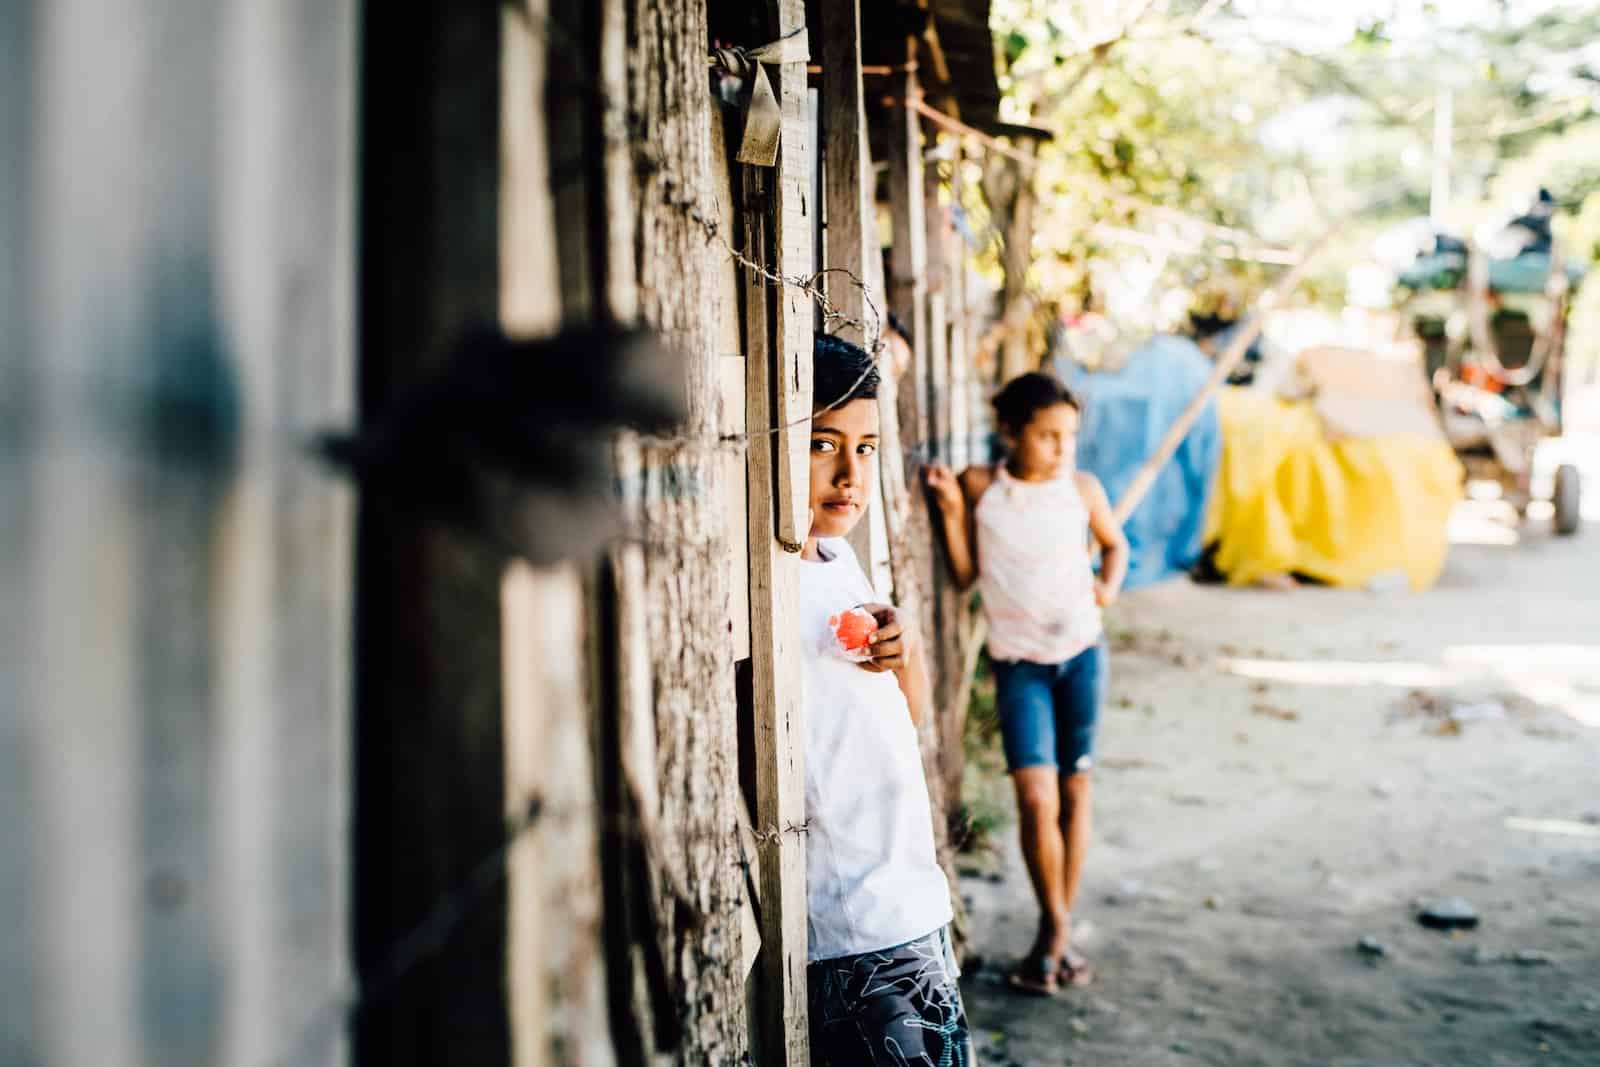 A boy stands in a wooden doorway with barbed wire fence wearing a white shirt. In the background is a girl and a dirt road.